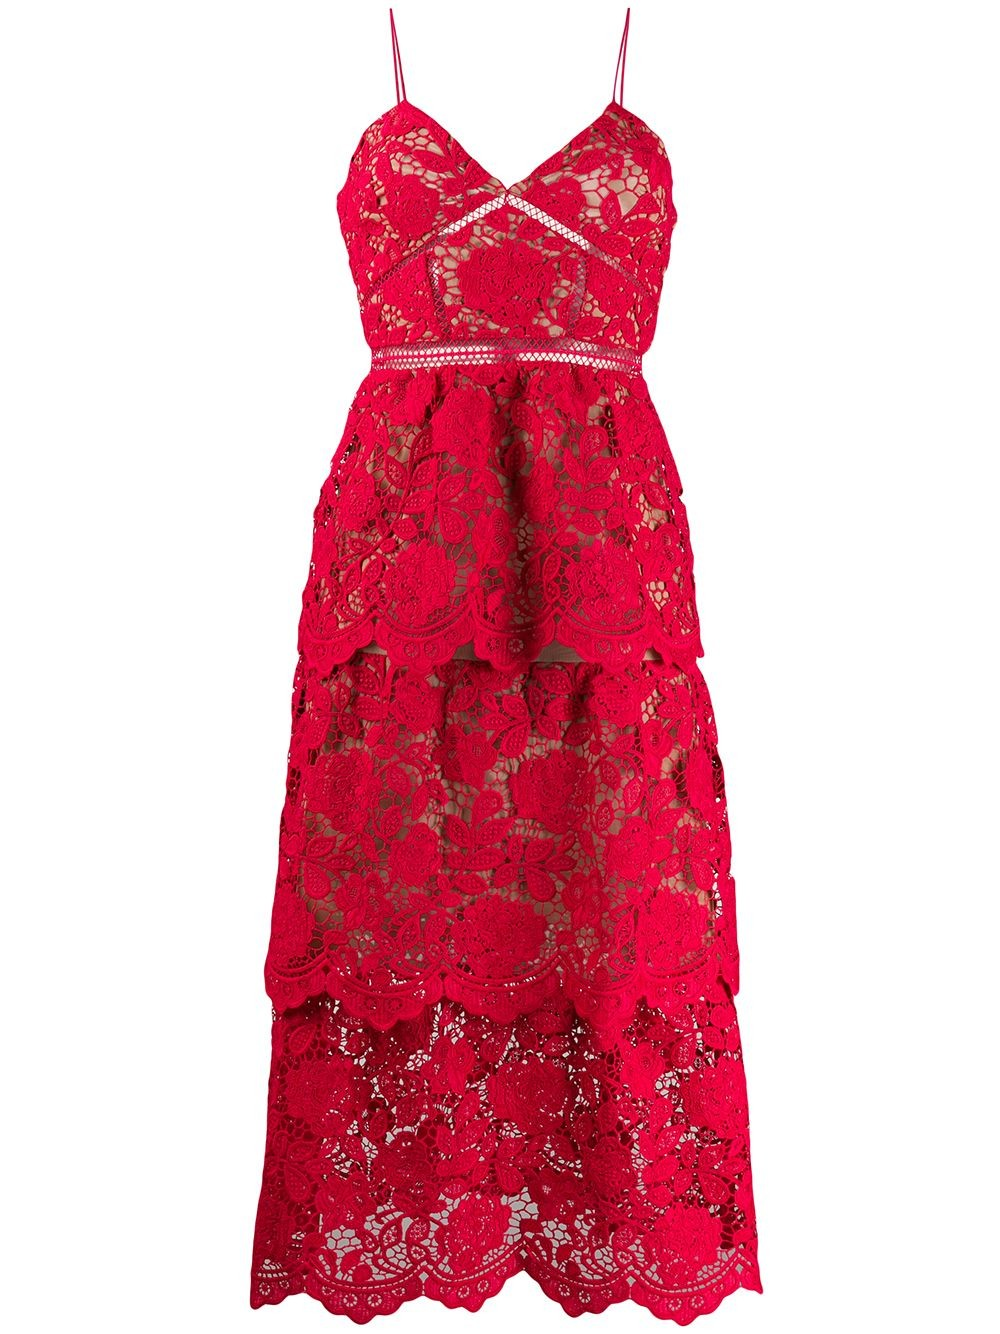 FUCHSIA FLOWER LACE MDI DRESS